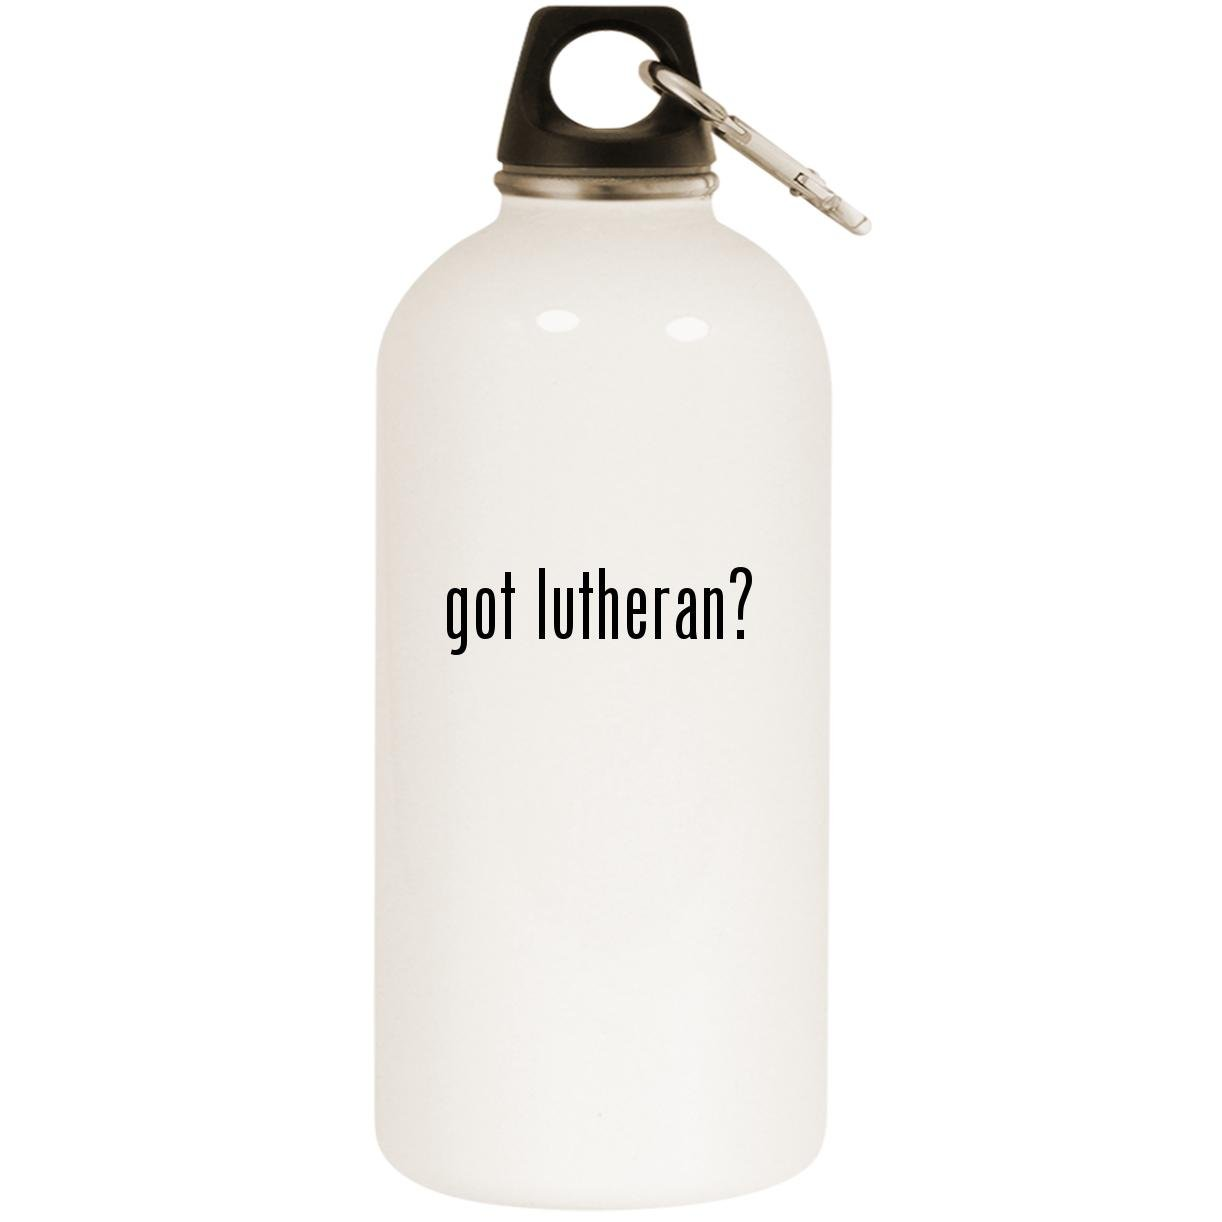 got lutheran? - White 20oz Stainless Steel Water Bottle with Carabiner